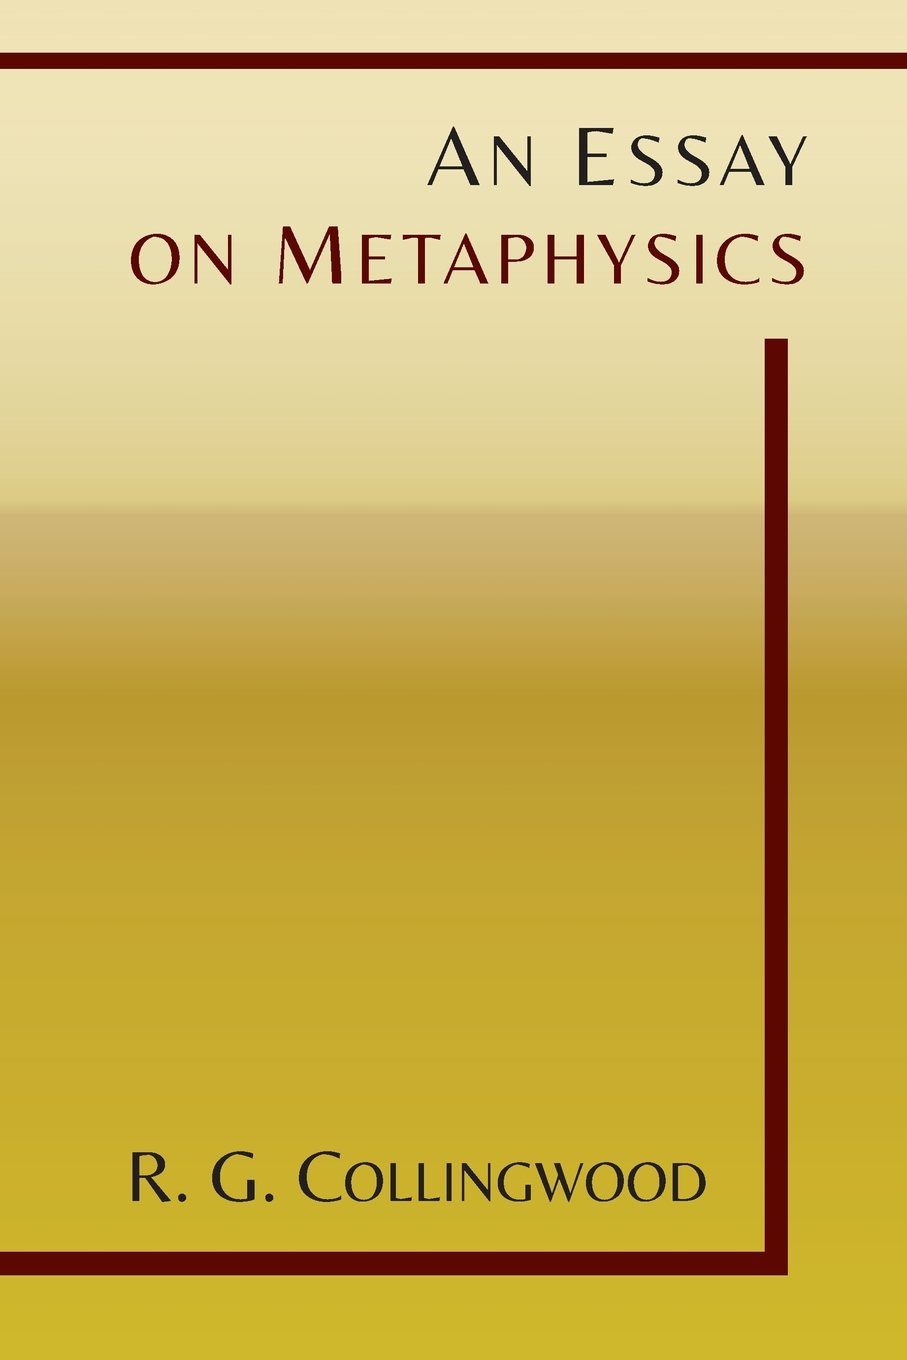 an essay on metaphysics r g collingwood 9781614276159  an essay on metaphysics r g collingwood 9781614276159 com books